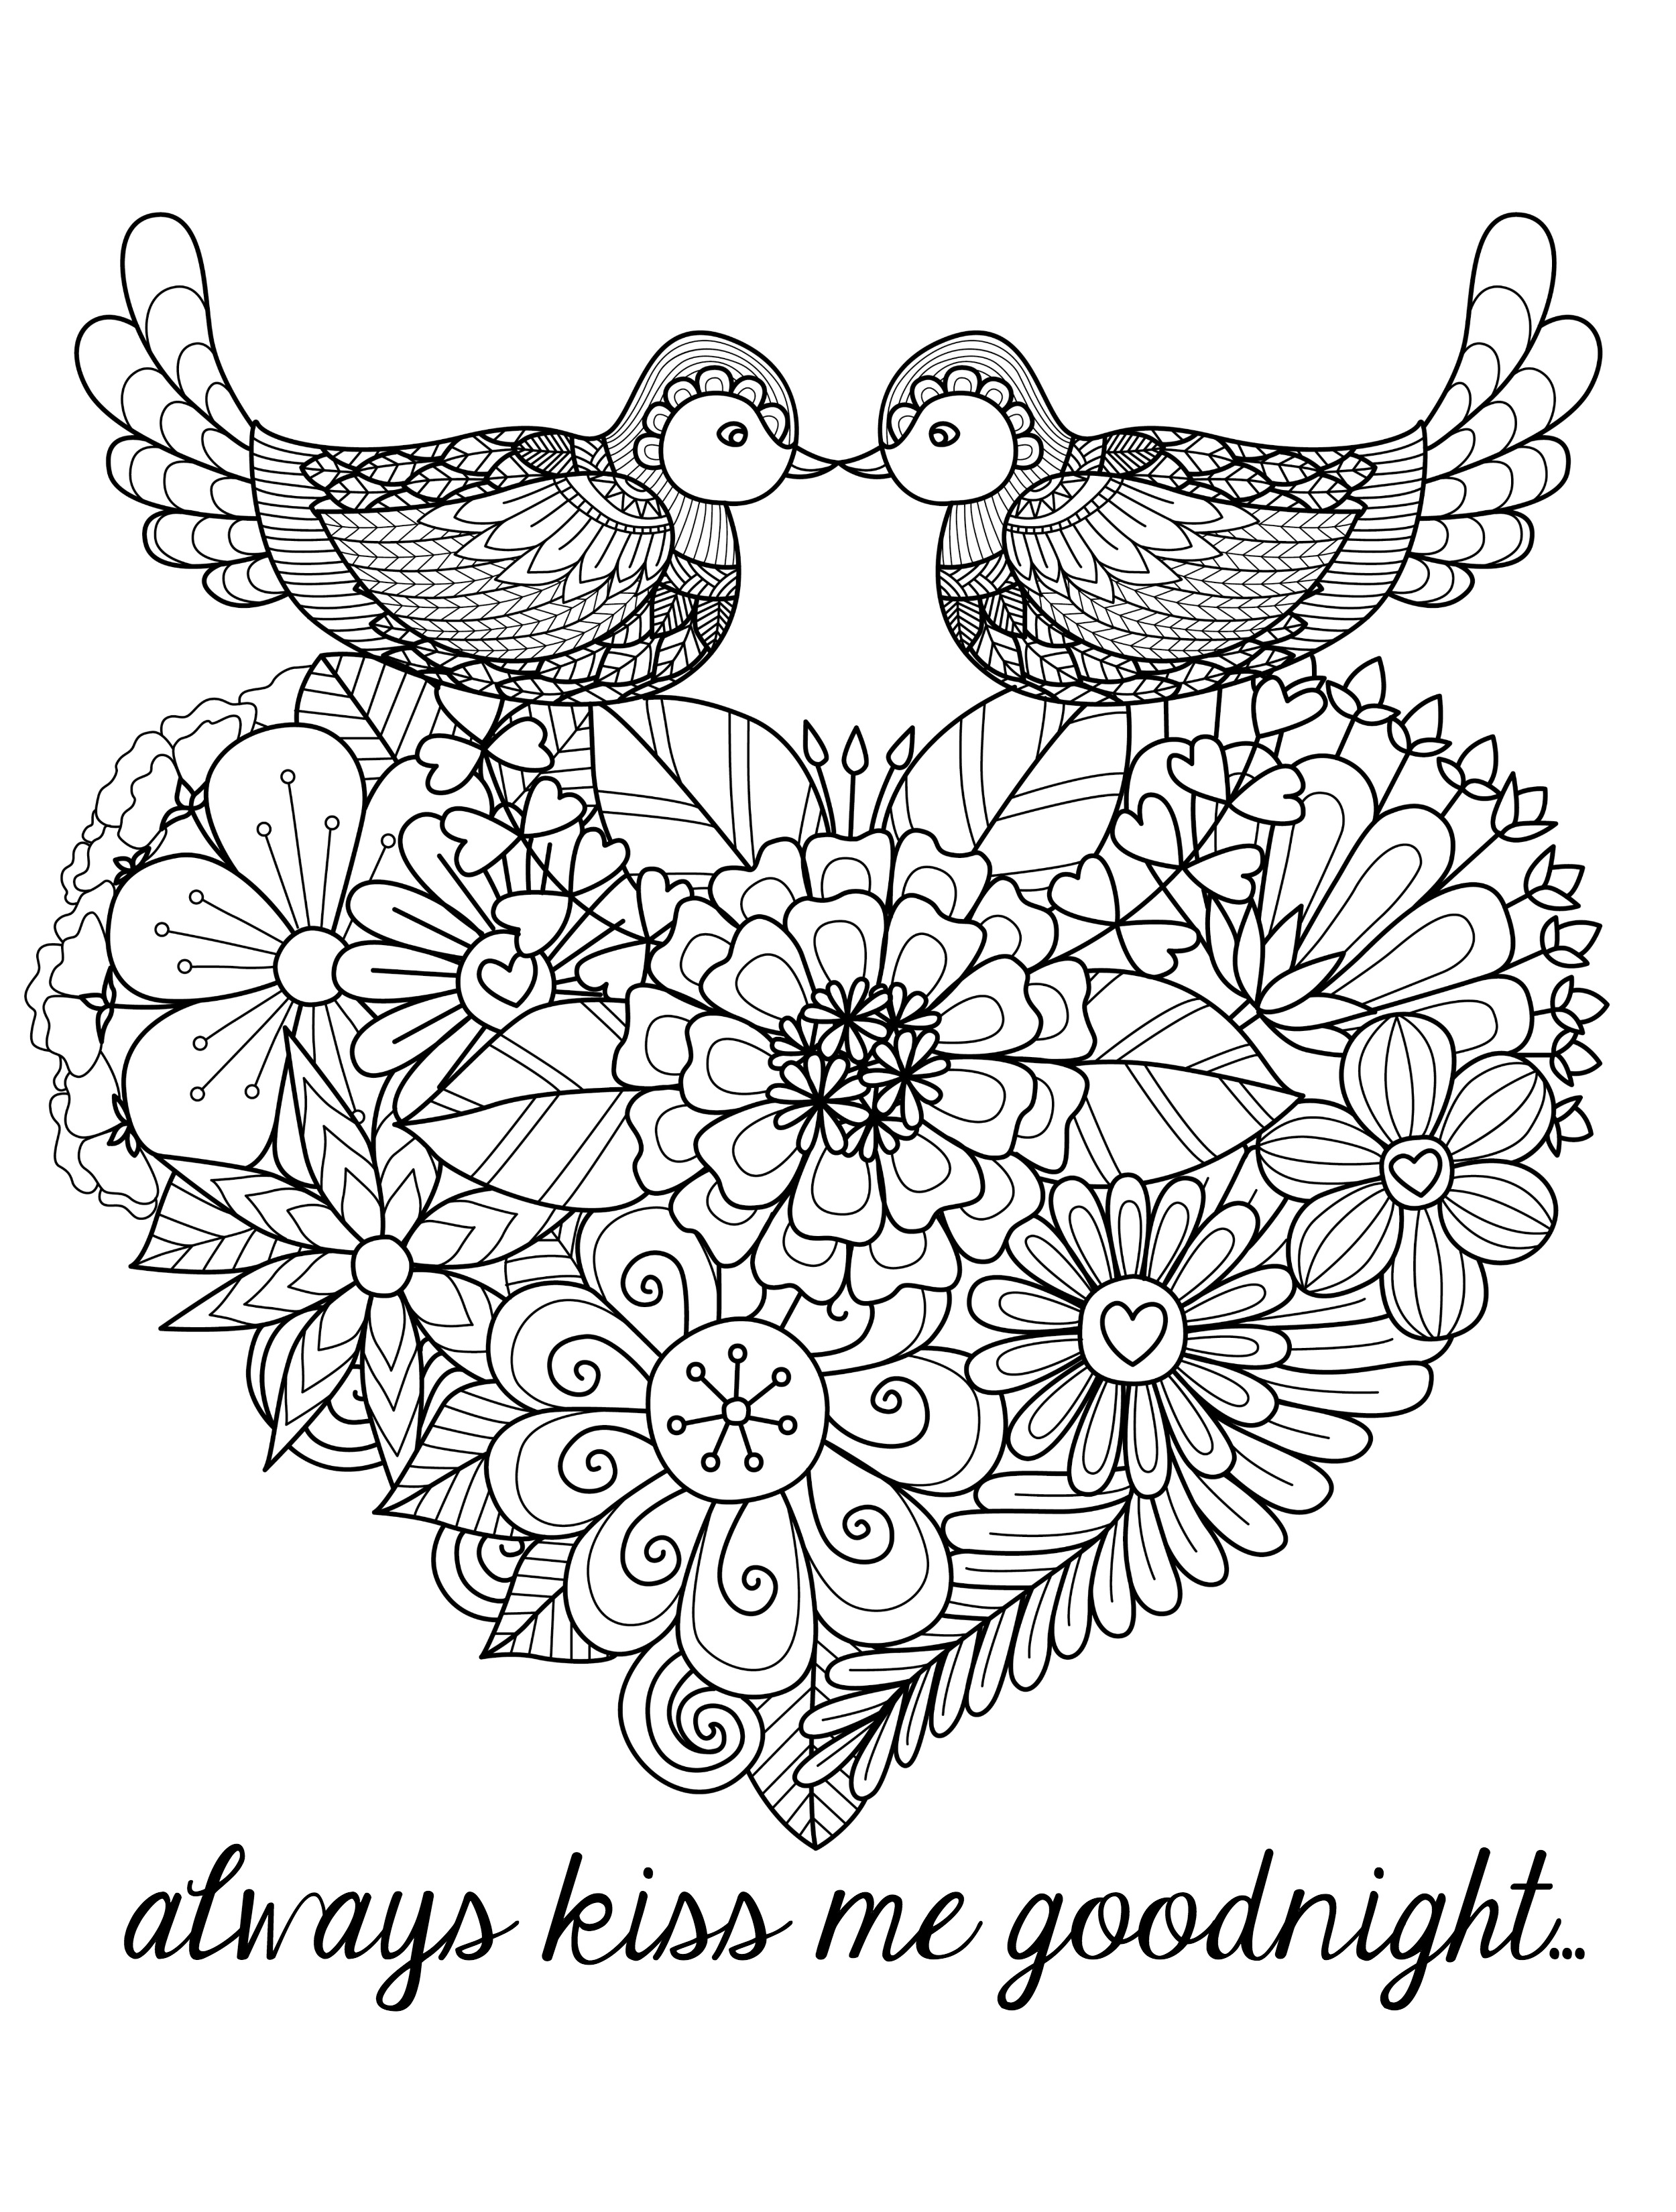 valentines day color pages valentines coloring pages free coloring pages for kids color day valentines pages